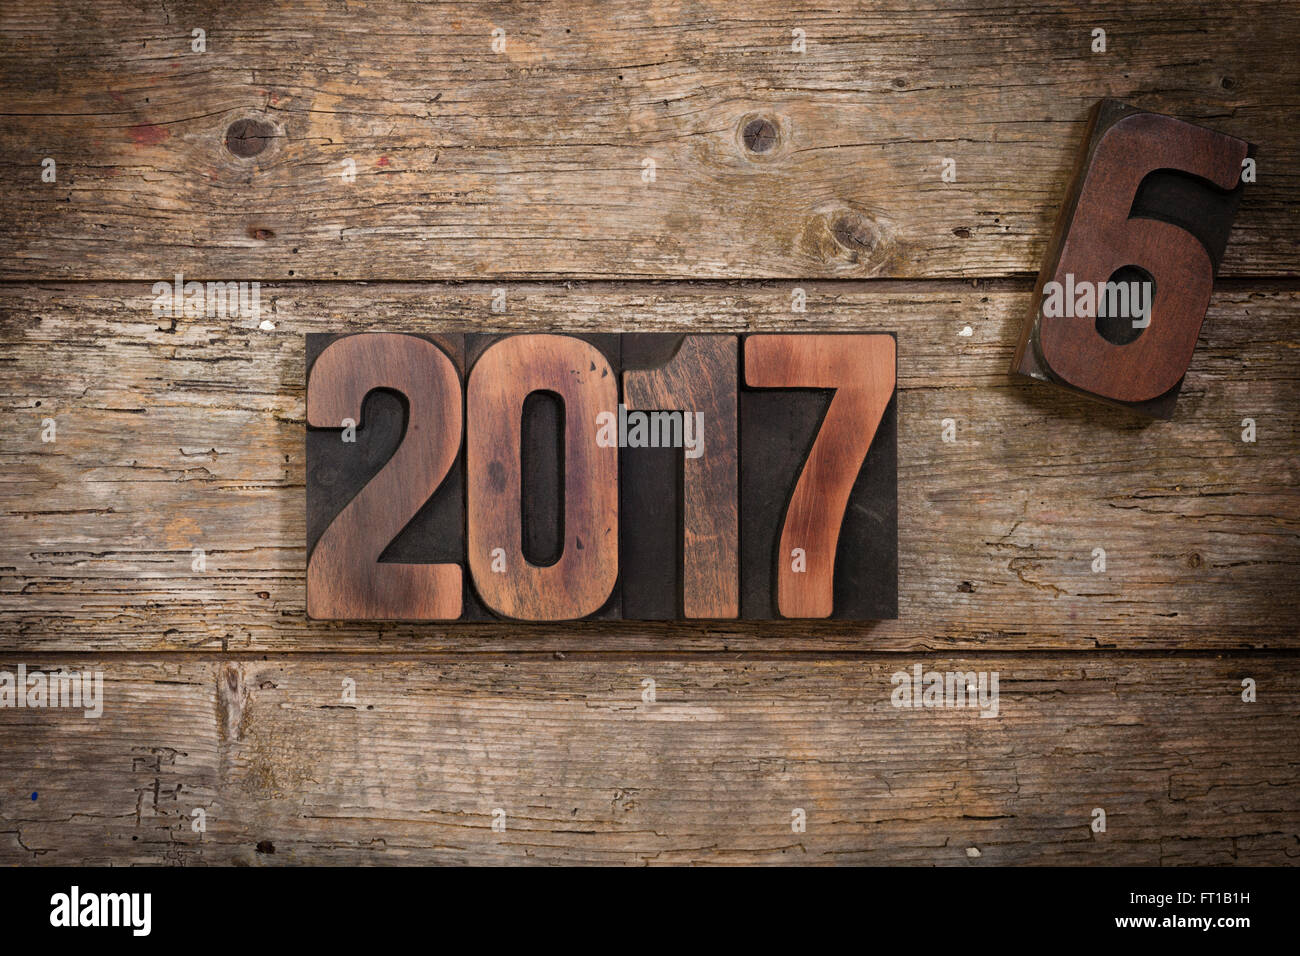 Turn of  the year 2016 to 2017 depicted with vintage letterpress printing block numbers on rustic wooden background - Stock Image